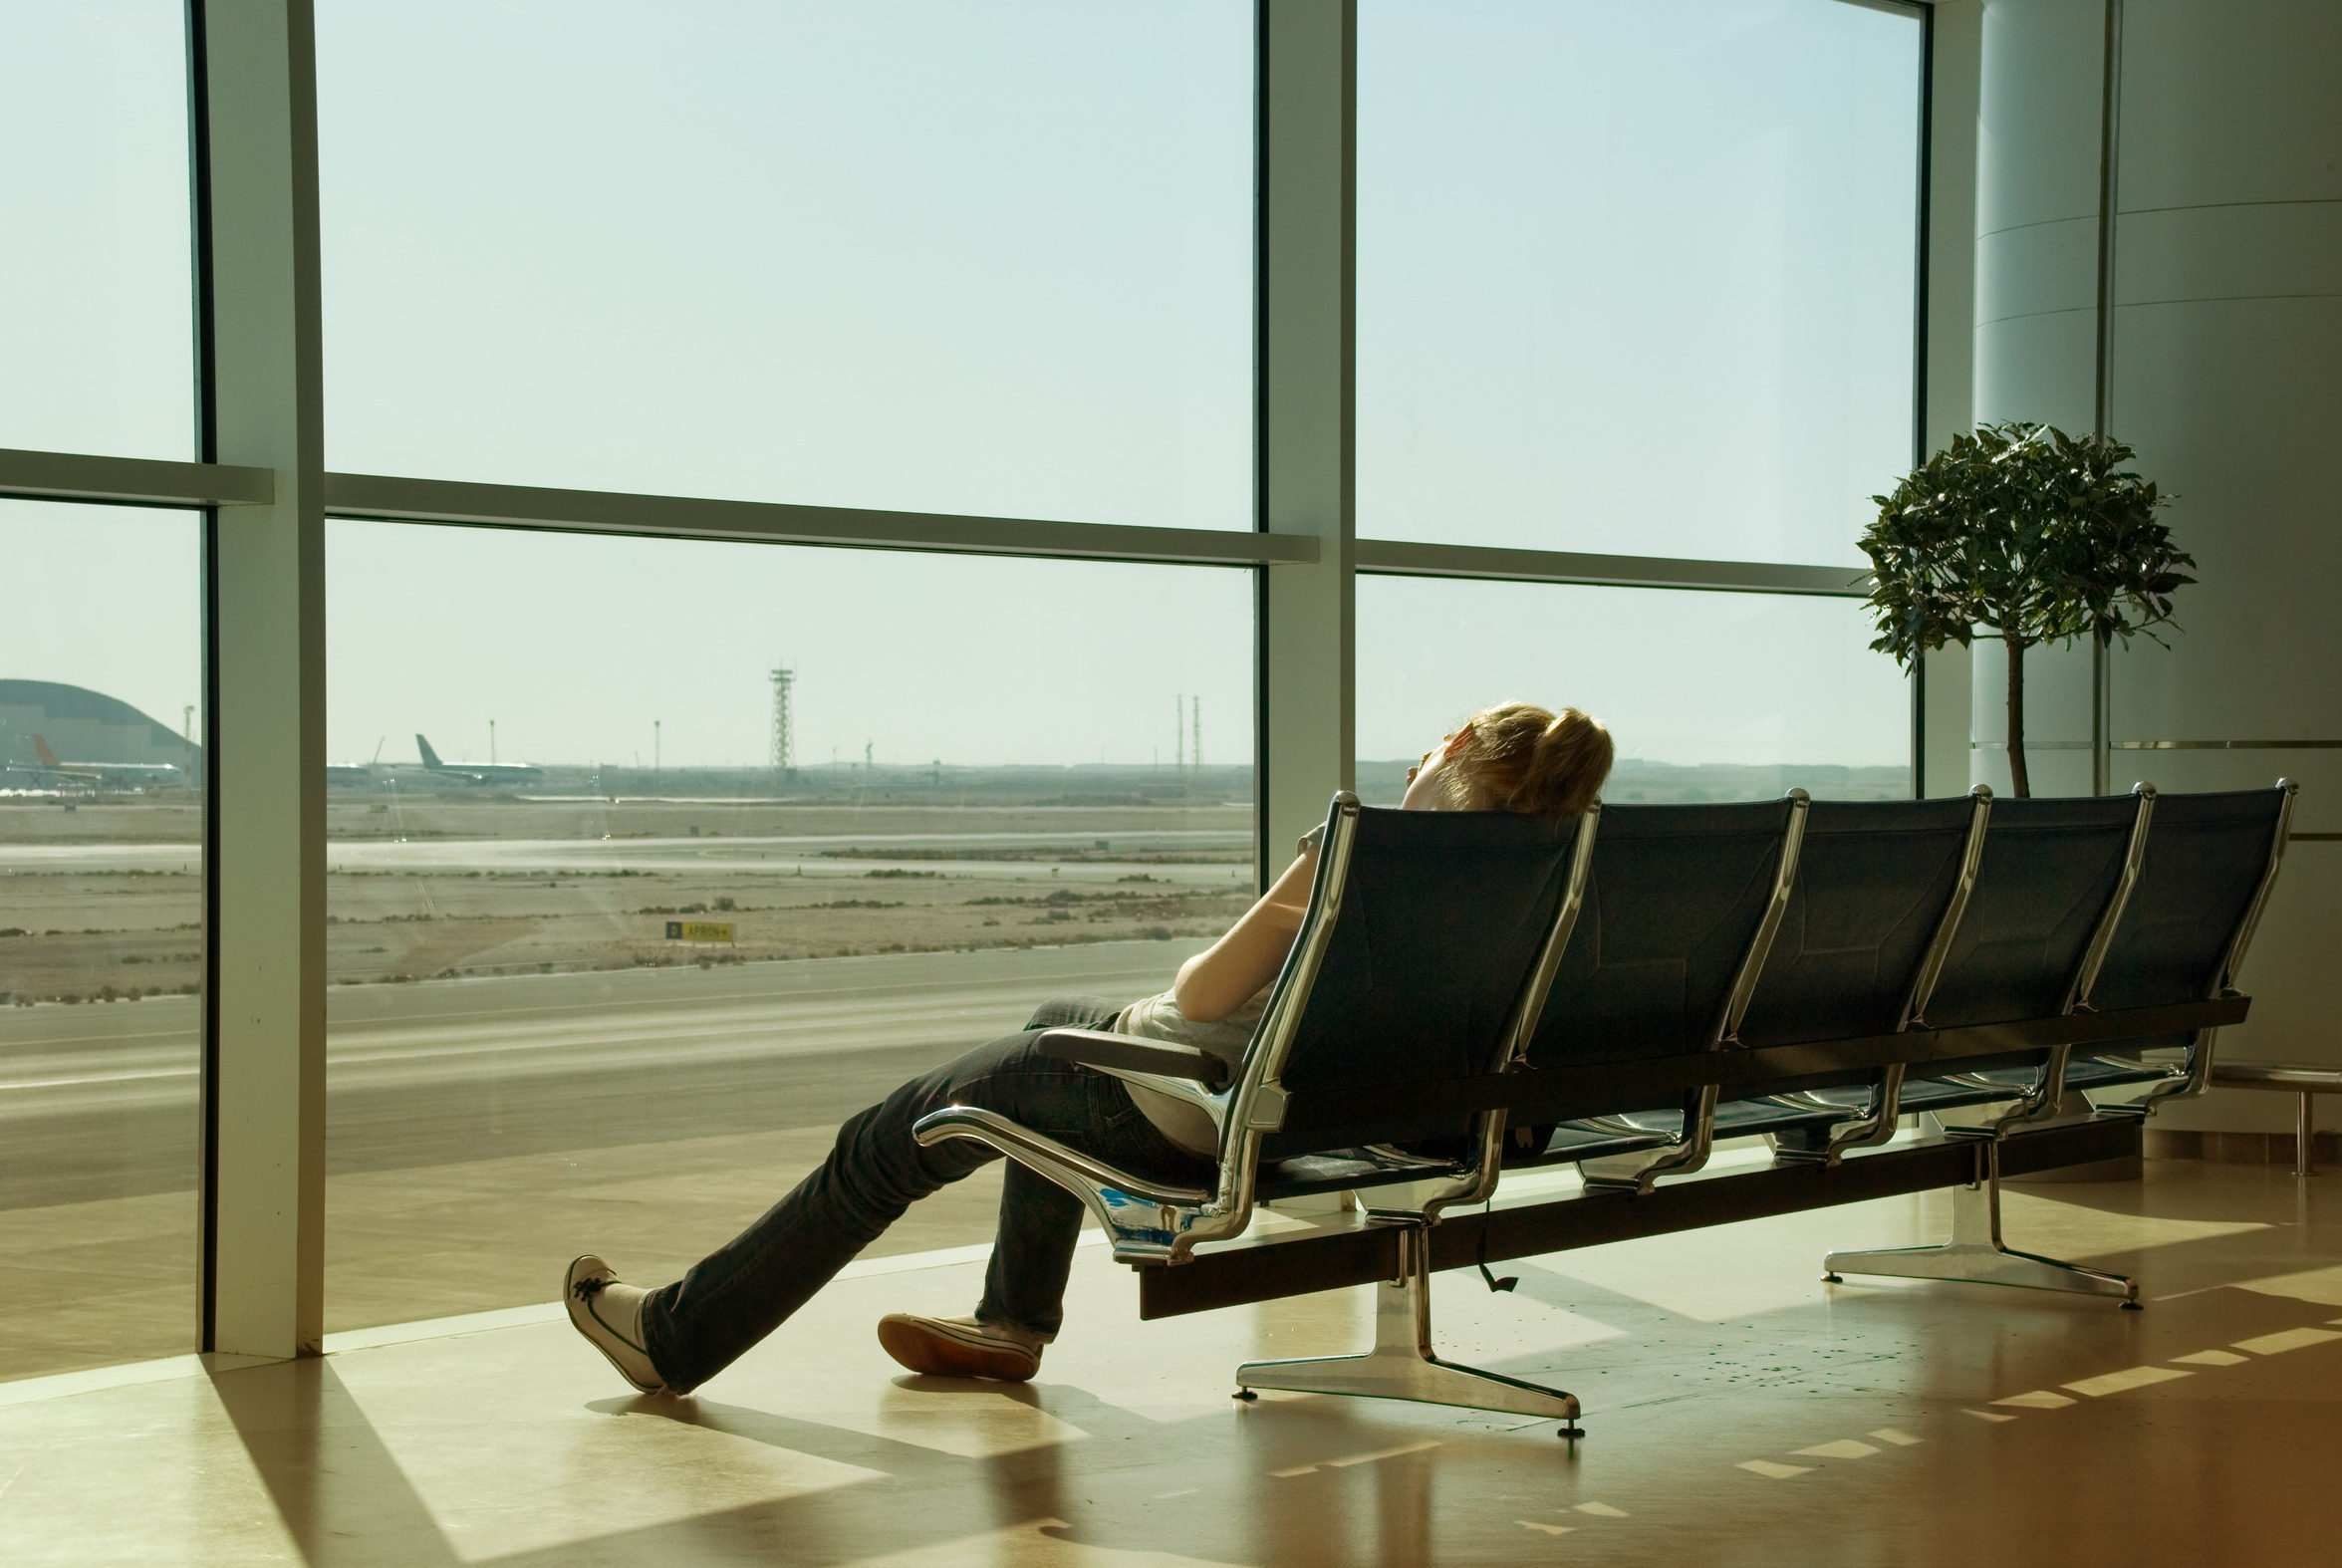 A lonely and jetlagged girl sitting and sleeping in a seats row in front of a sunny window facing the tarmac and airplanes on an airport passenger lounge.